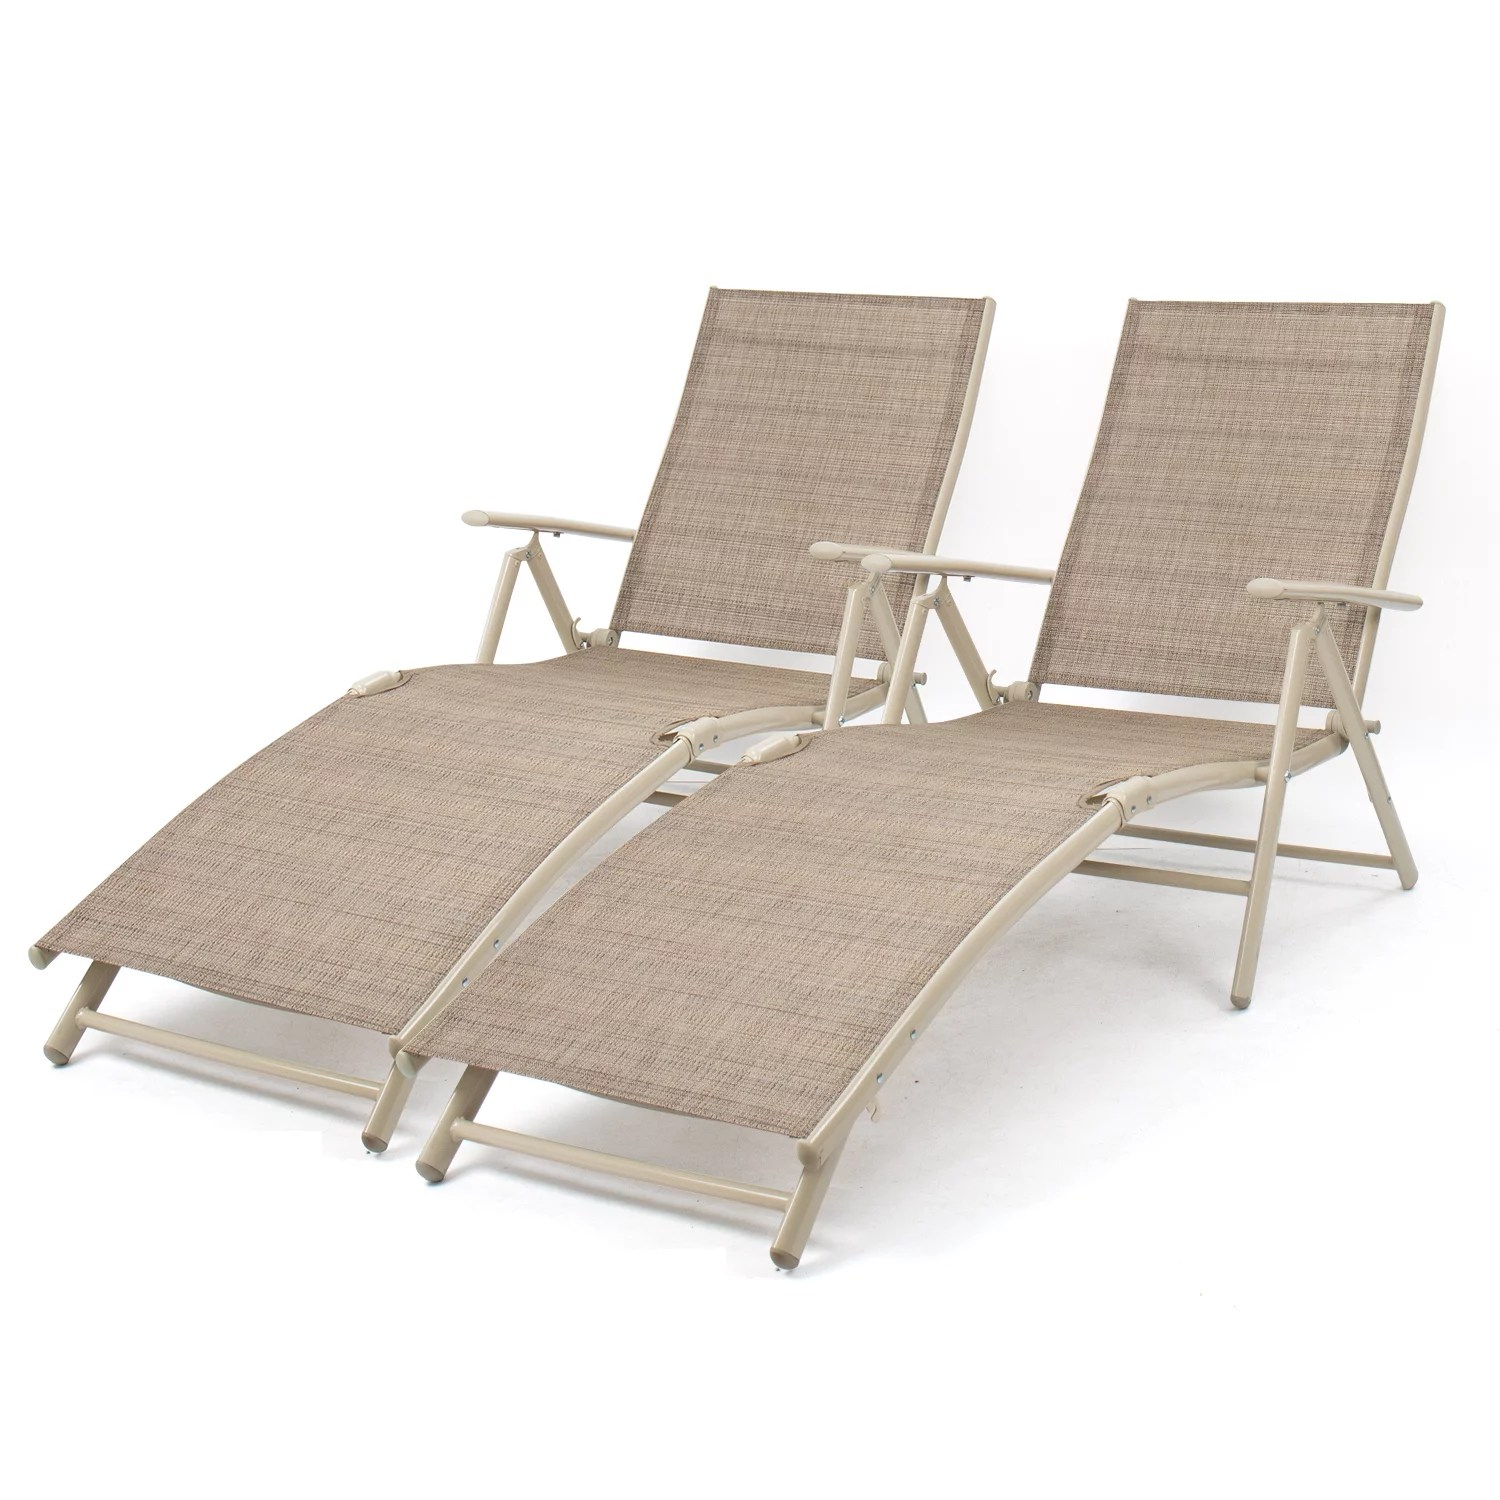 walnew set of 2 patio lounge chairs adjustable pool chaise lounge chairs folding outdoor recliners beige